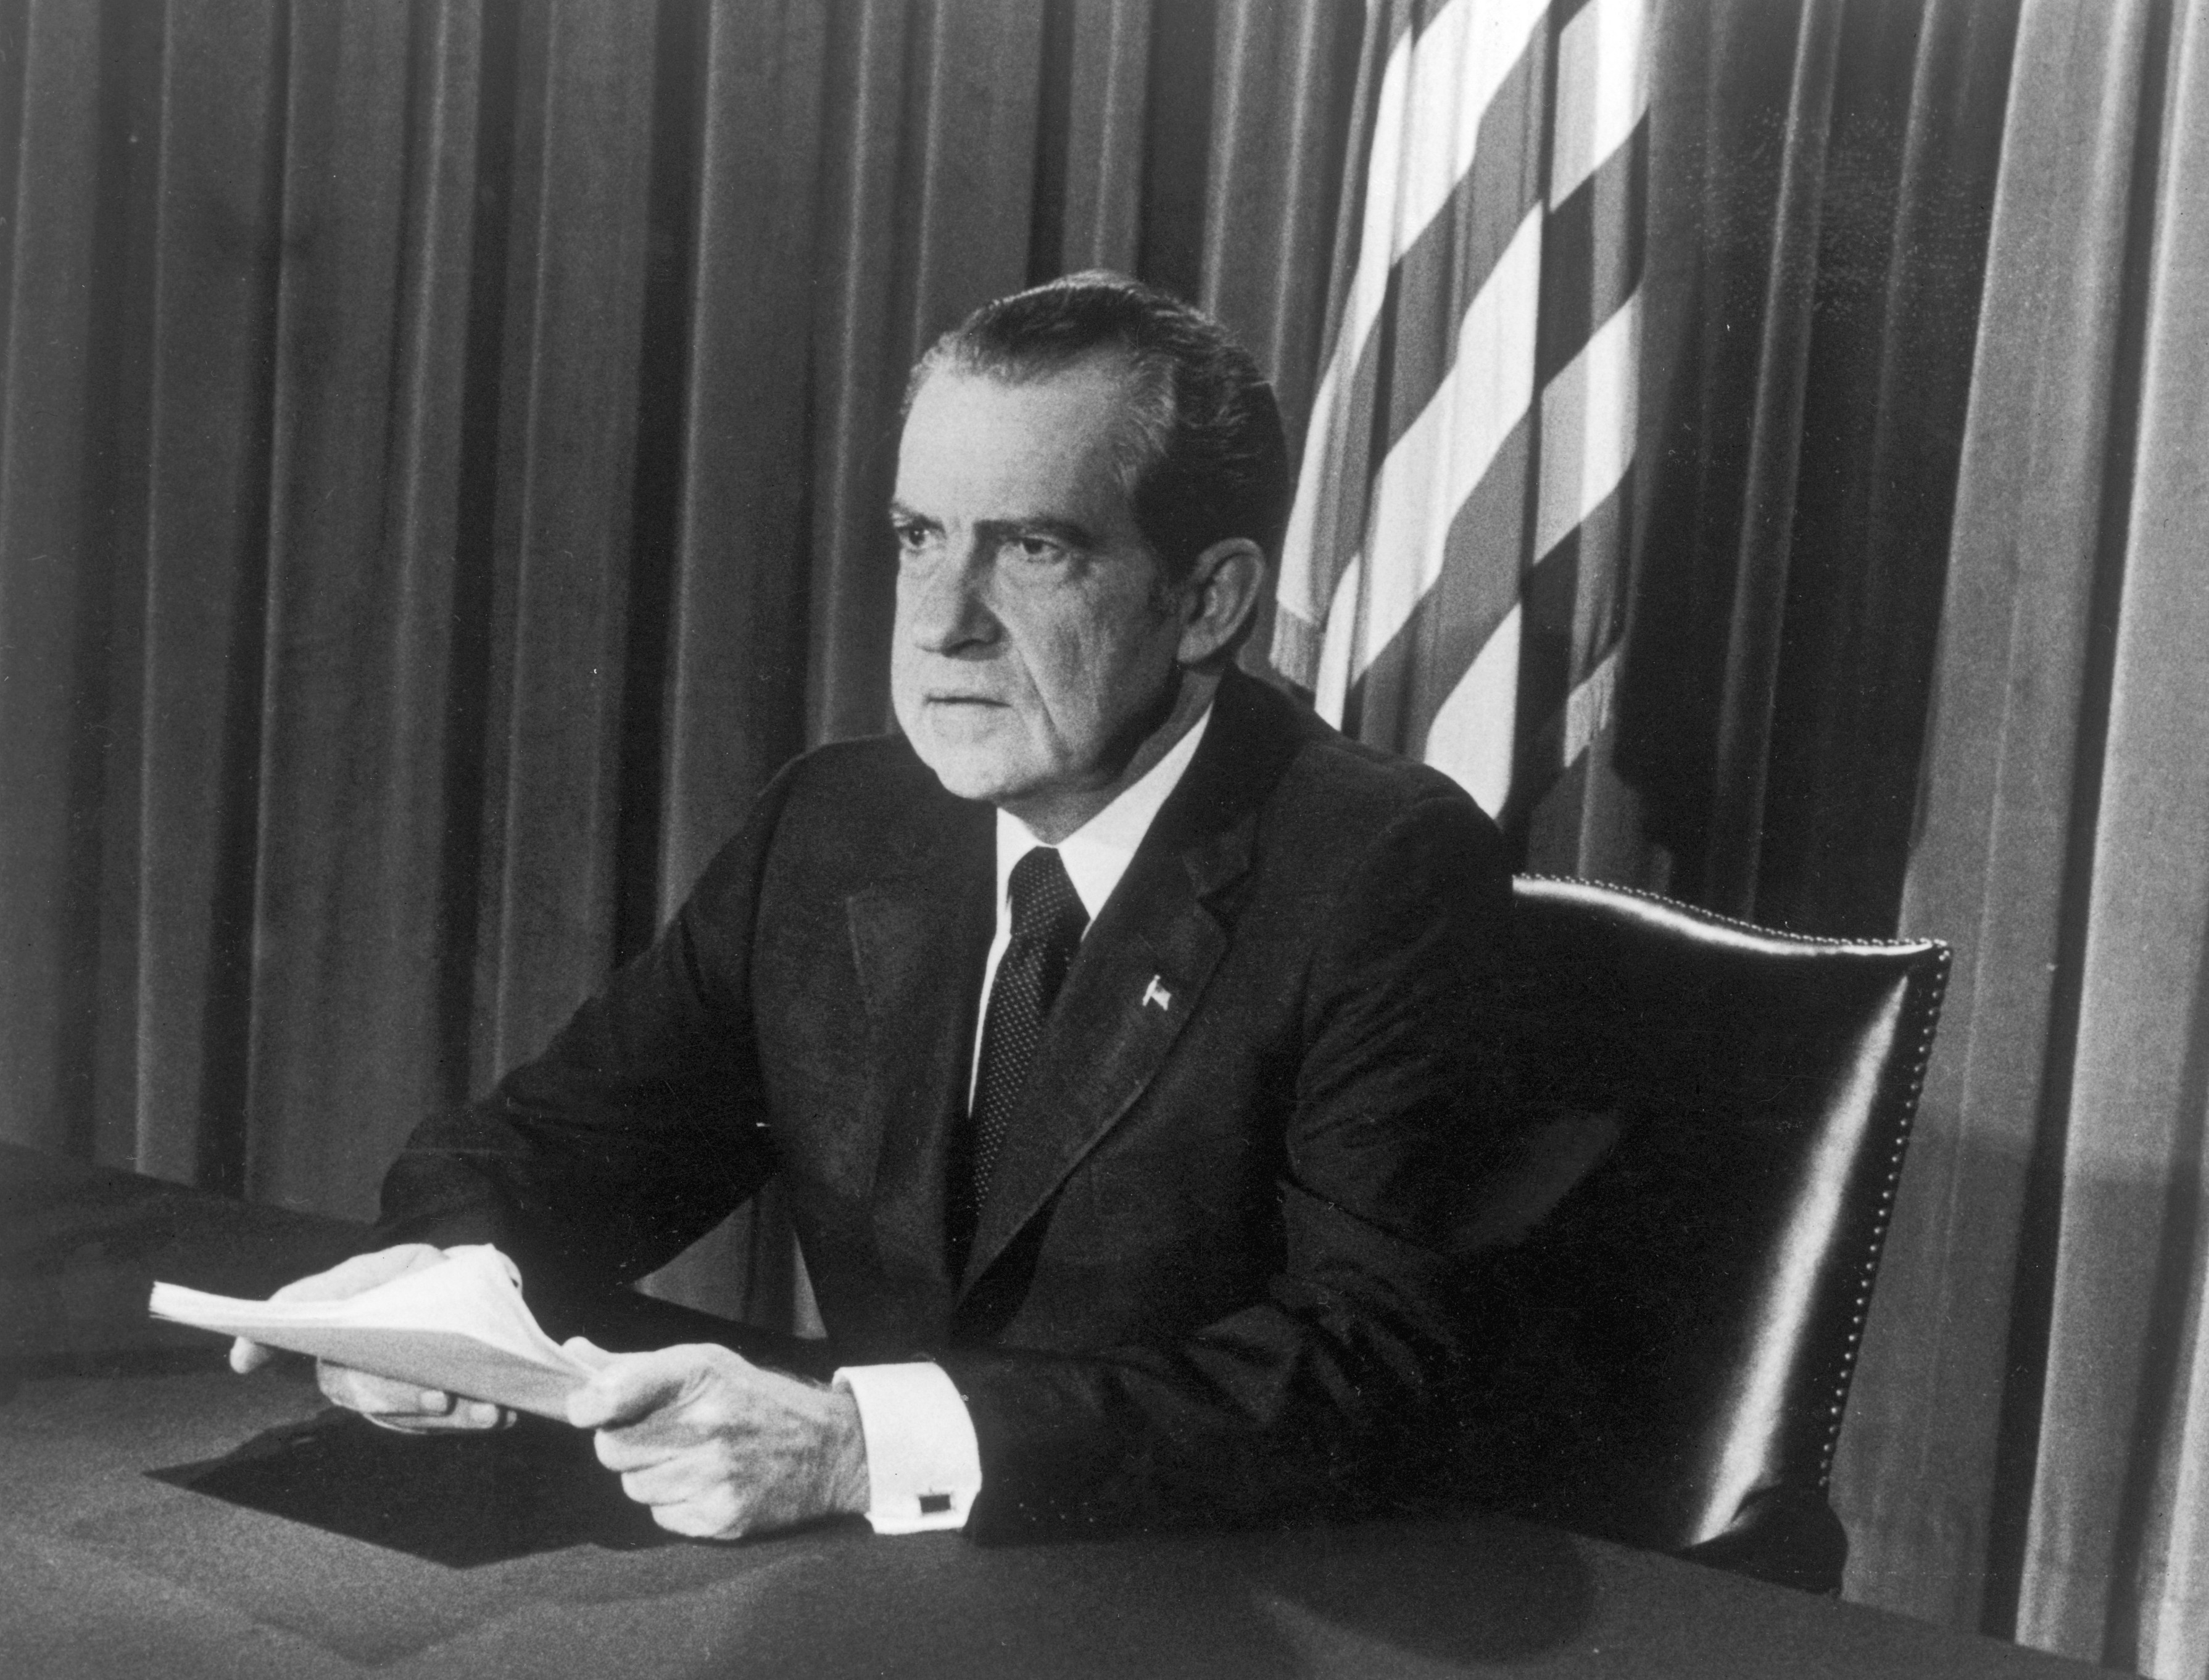 U.S. President Richard M. Nixon sits at a desk, holding papers, as he announces his resignation on television, Washington, D.C. (Photo by Hulton Archive/Getty Images)